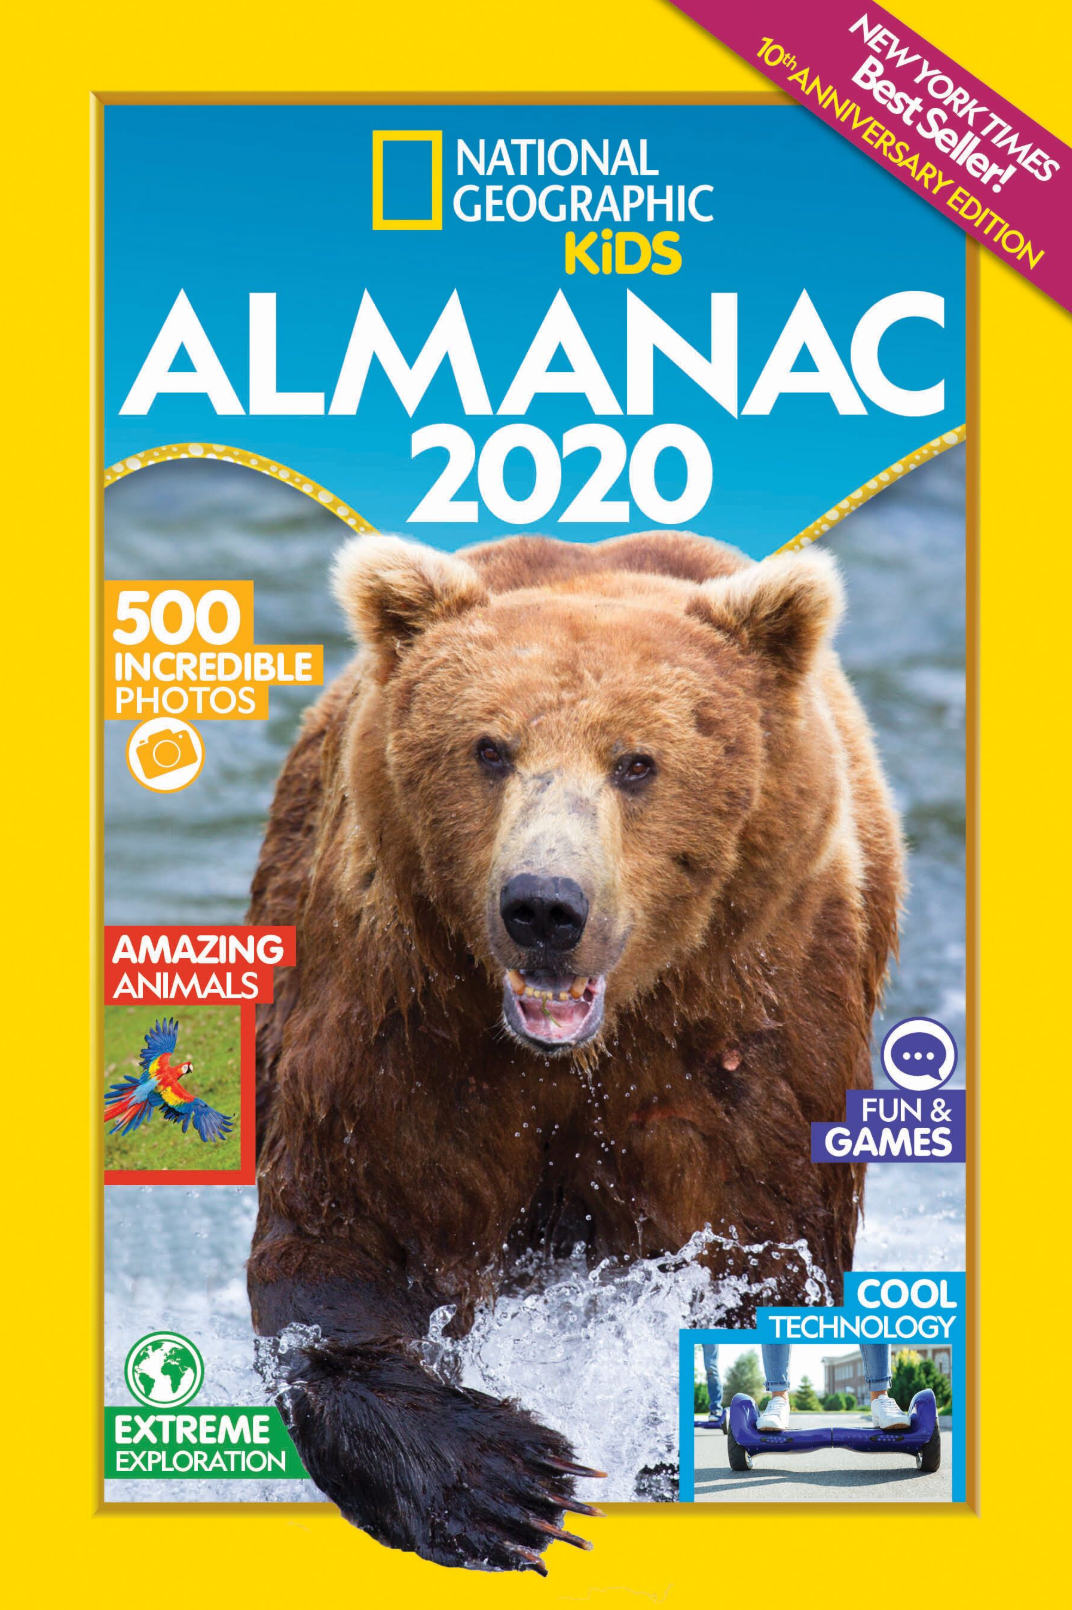 Photo of National Geographic Kids Almanac cover